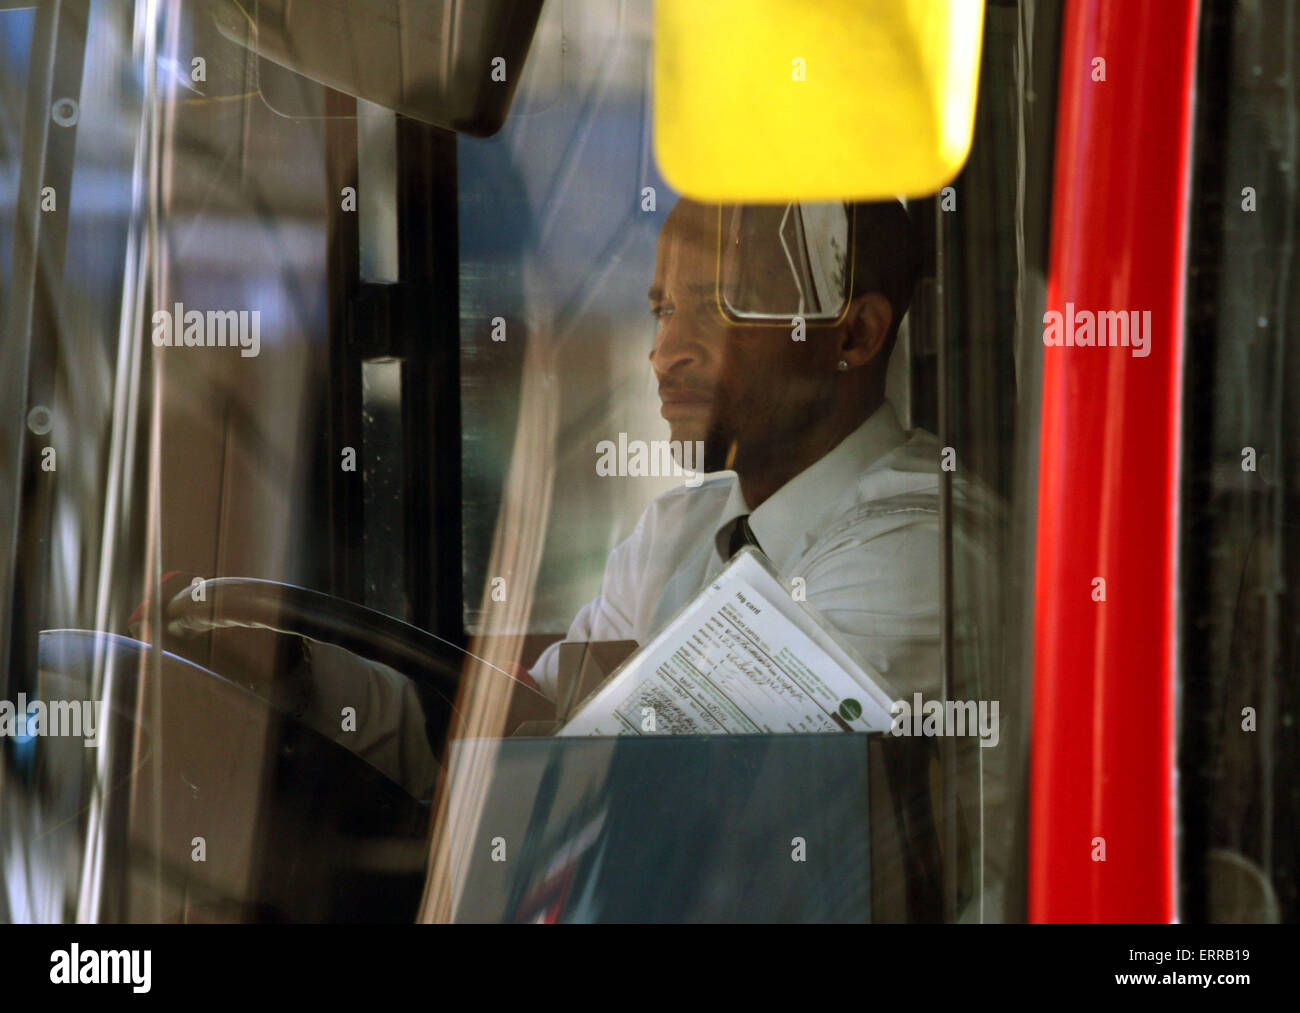 Bus driver London stuck in traffic jam driving red - Stock Image